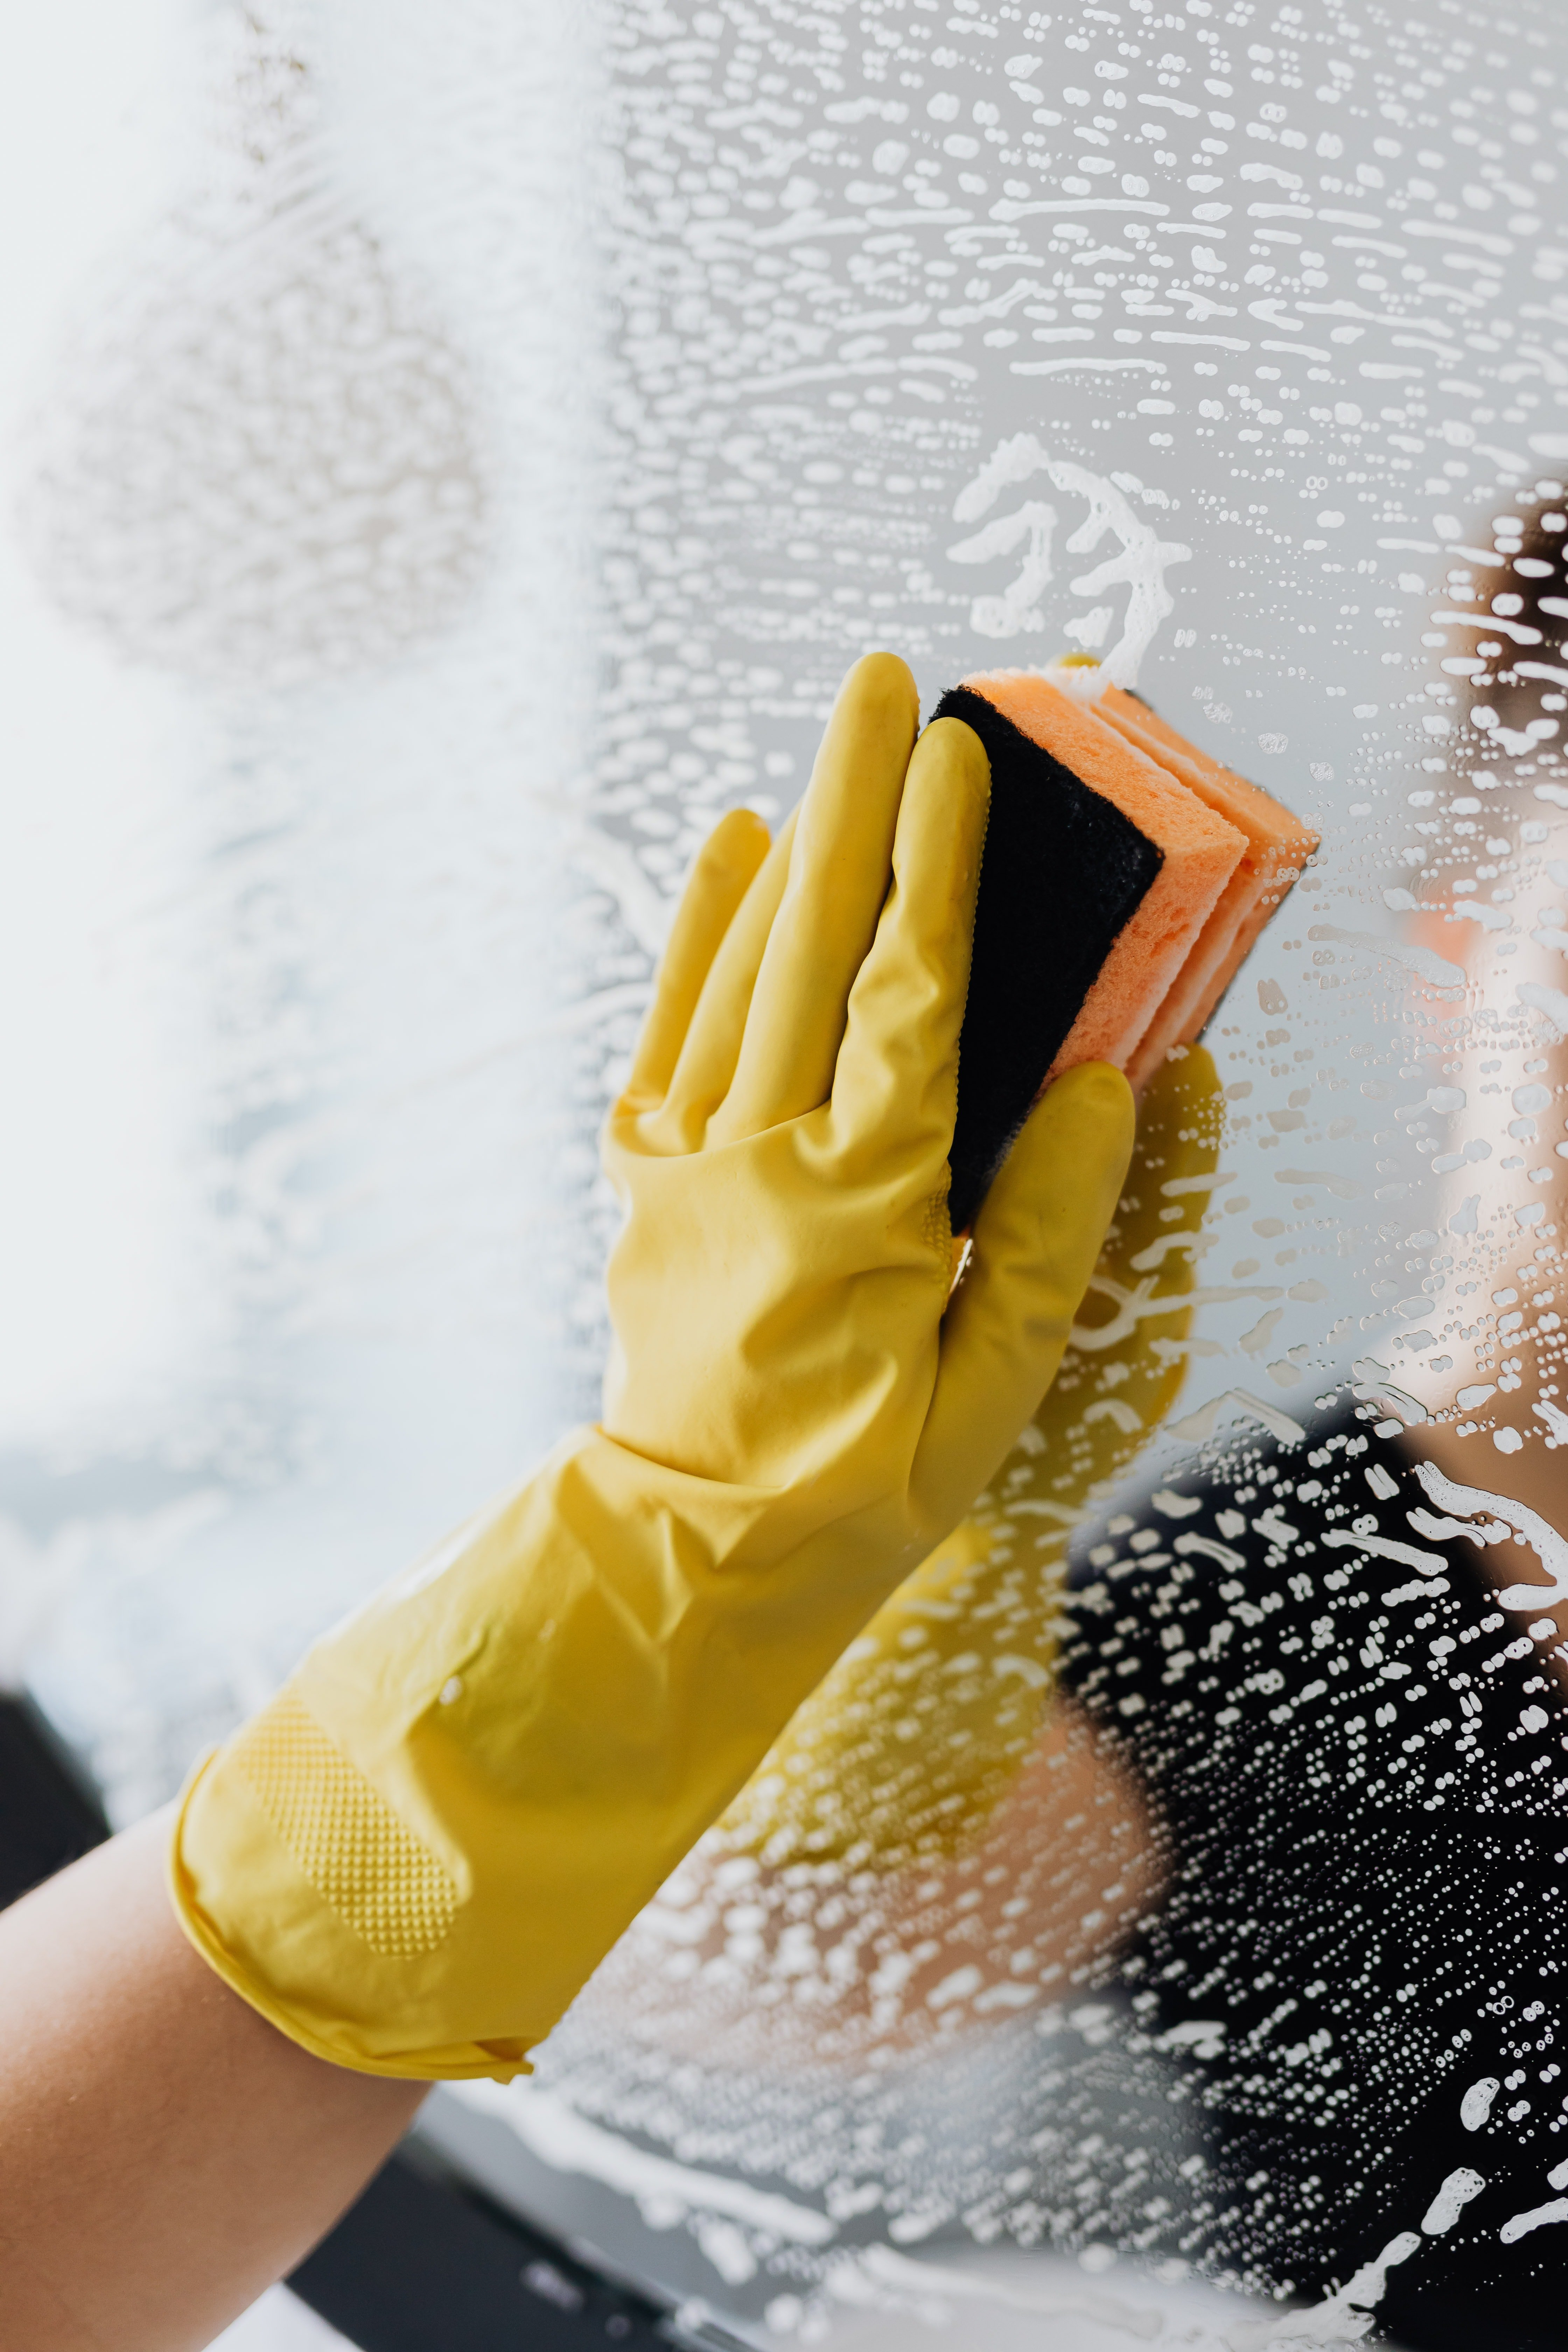 A person cleaning the mirror with a sponge | Photo: Pexels